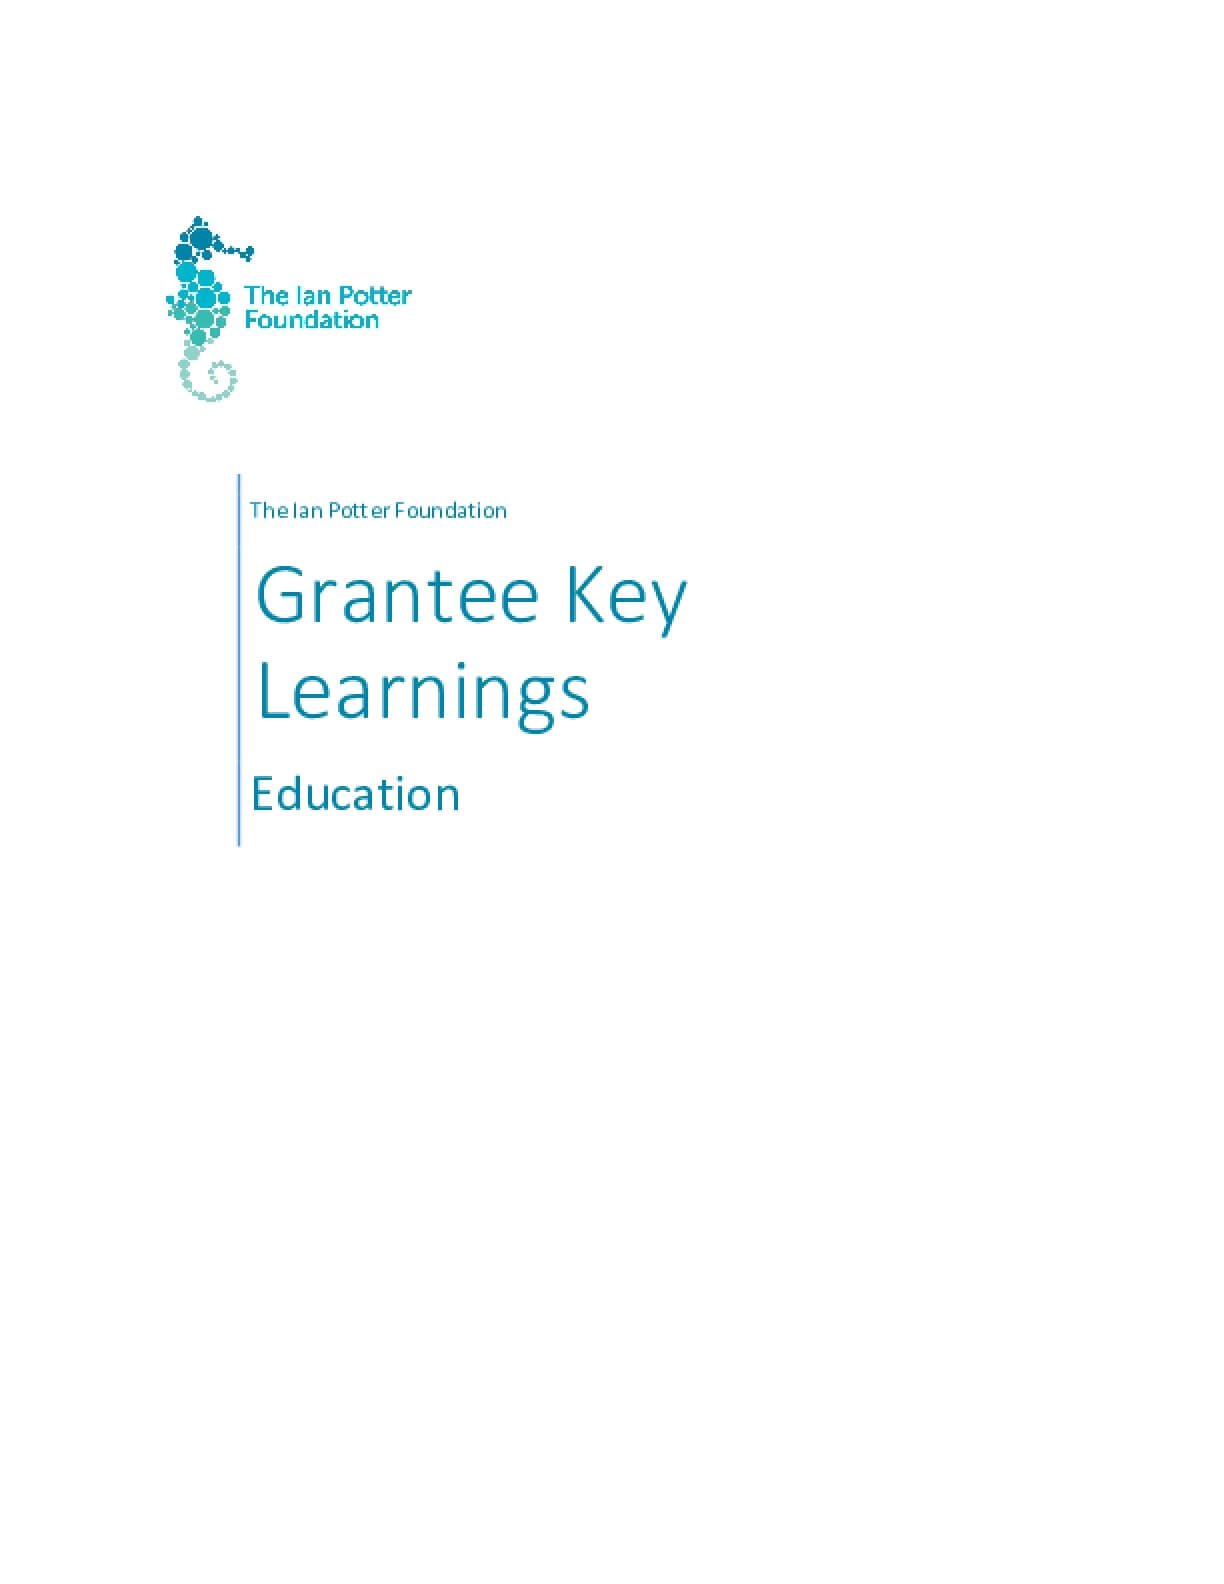 The Ian Potter Foundation Grantee Learnings - Education